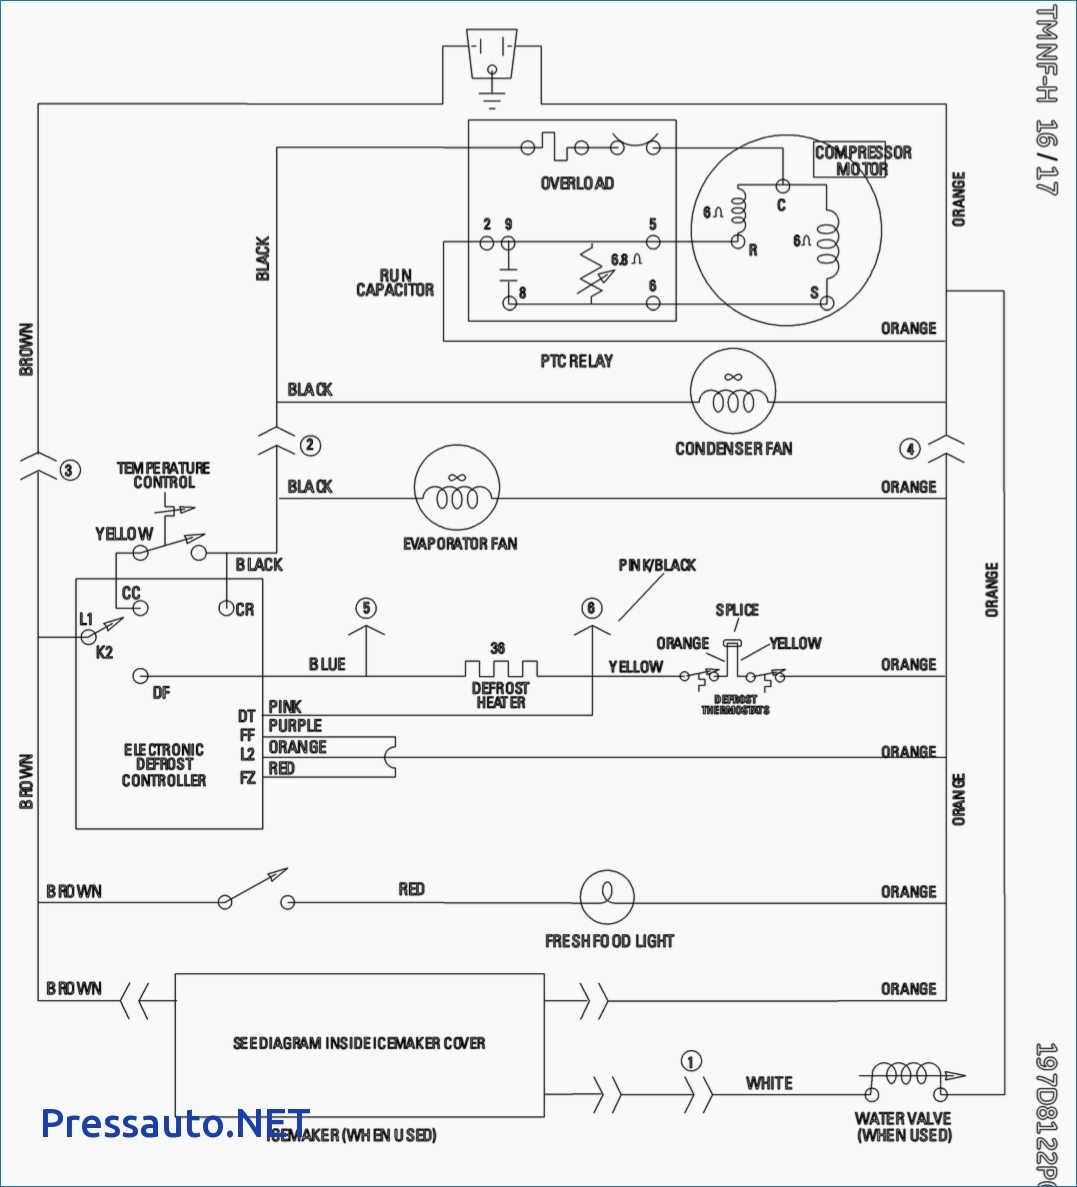 Whirlpool Refrigerator Wiring Diagram Pdf -Simple Inverter Circuit Diagrams  1000w | Begeboy Wiring Diagram Source | Whirlpool Refrigerator Wiring Schematic |  | Begeboy Wiring Diagram Source